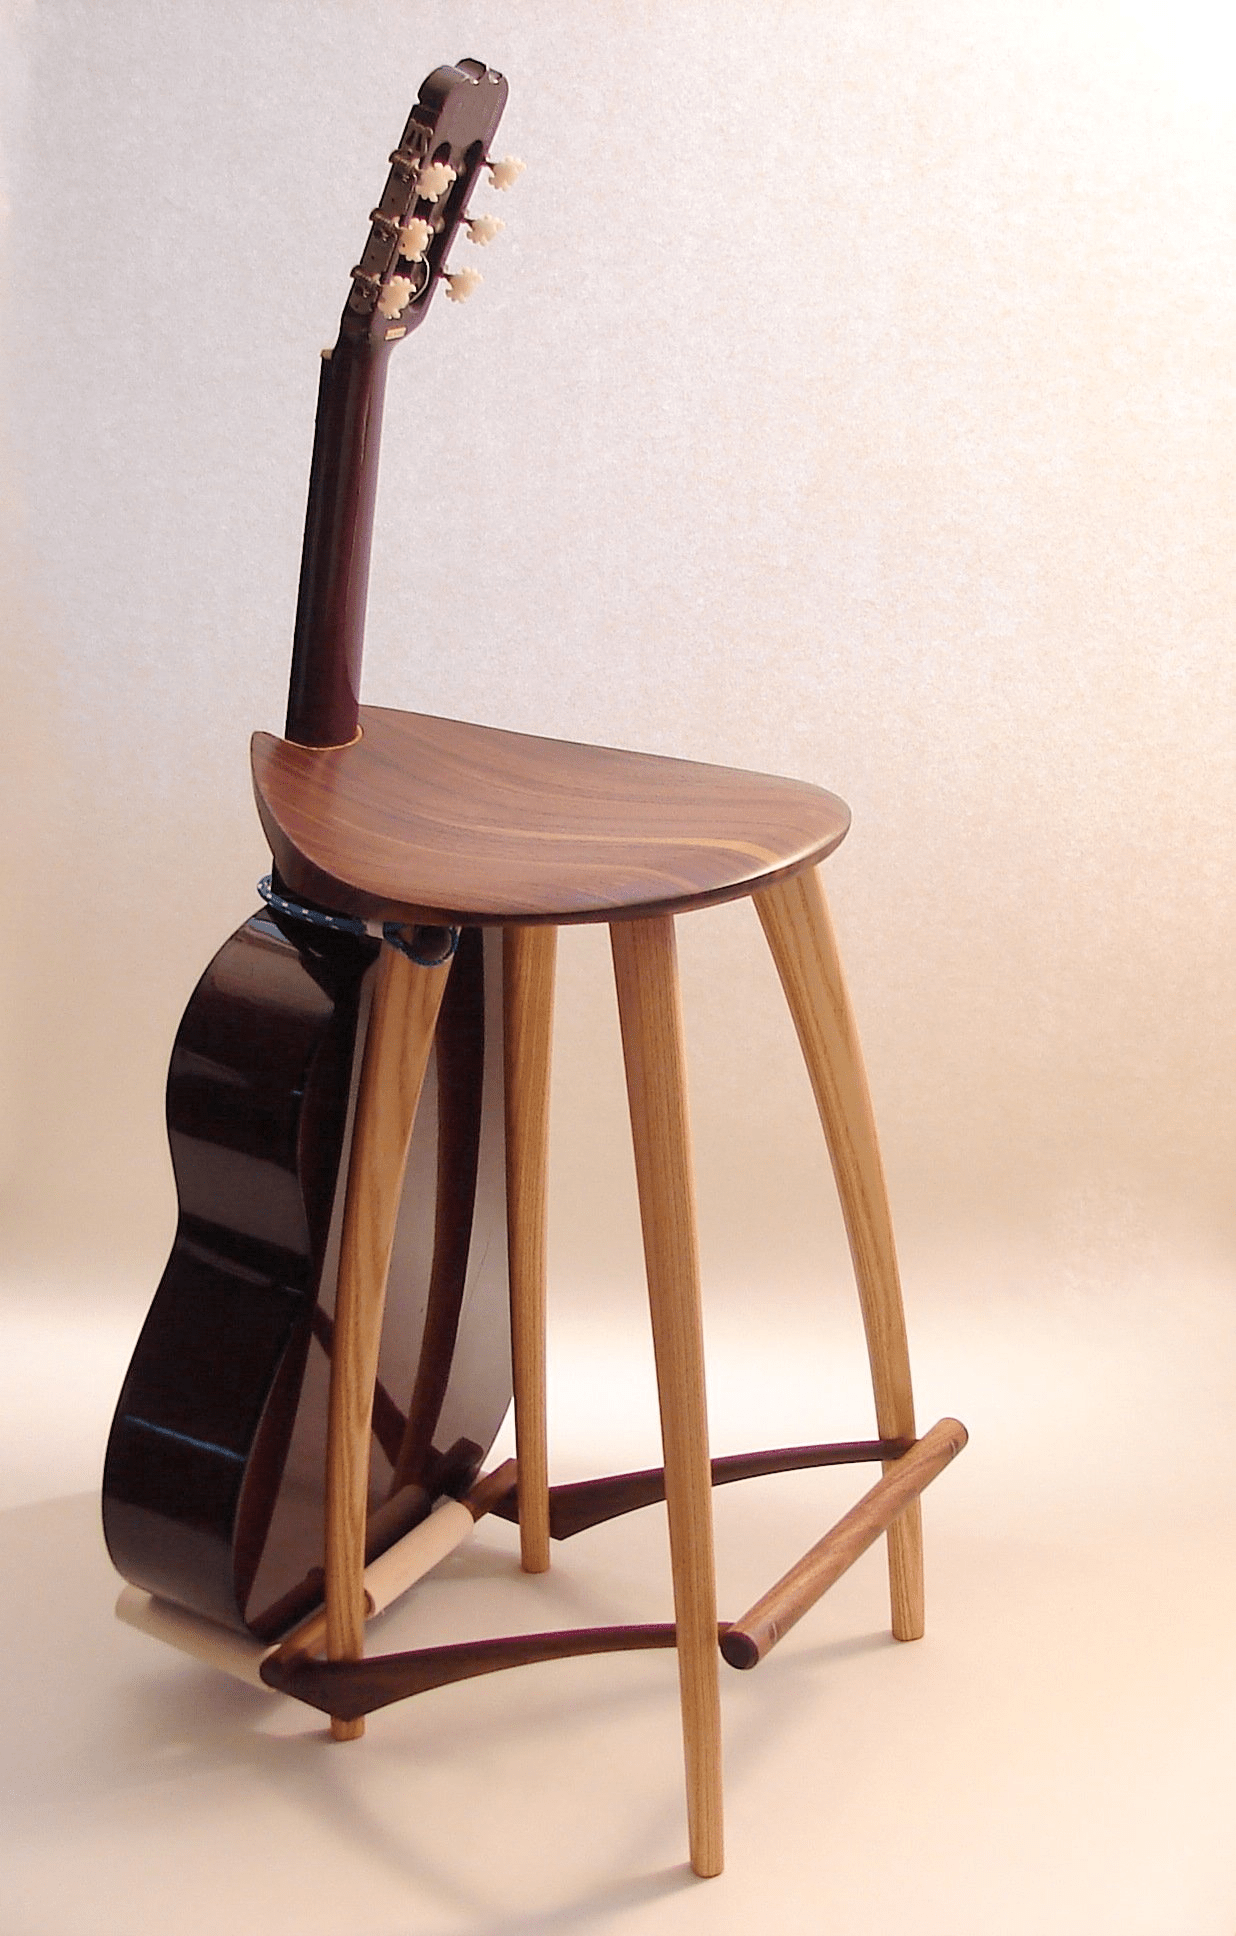 classical guitar chair fisher price rocking stool stand fillingham art furniture design yacht braid creates a restraint to hold the securely this is easily removed from either end and not required just an extra